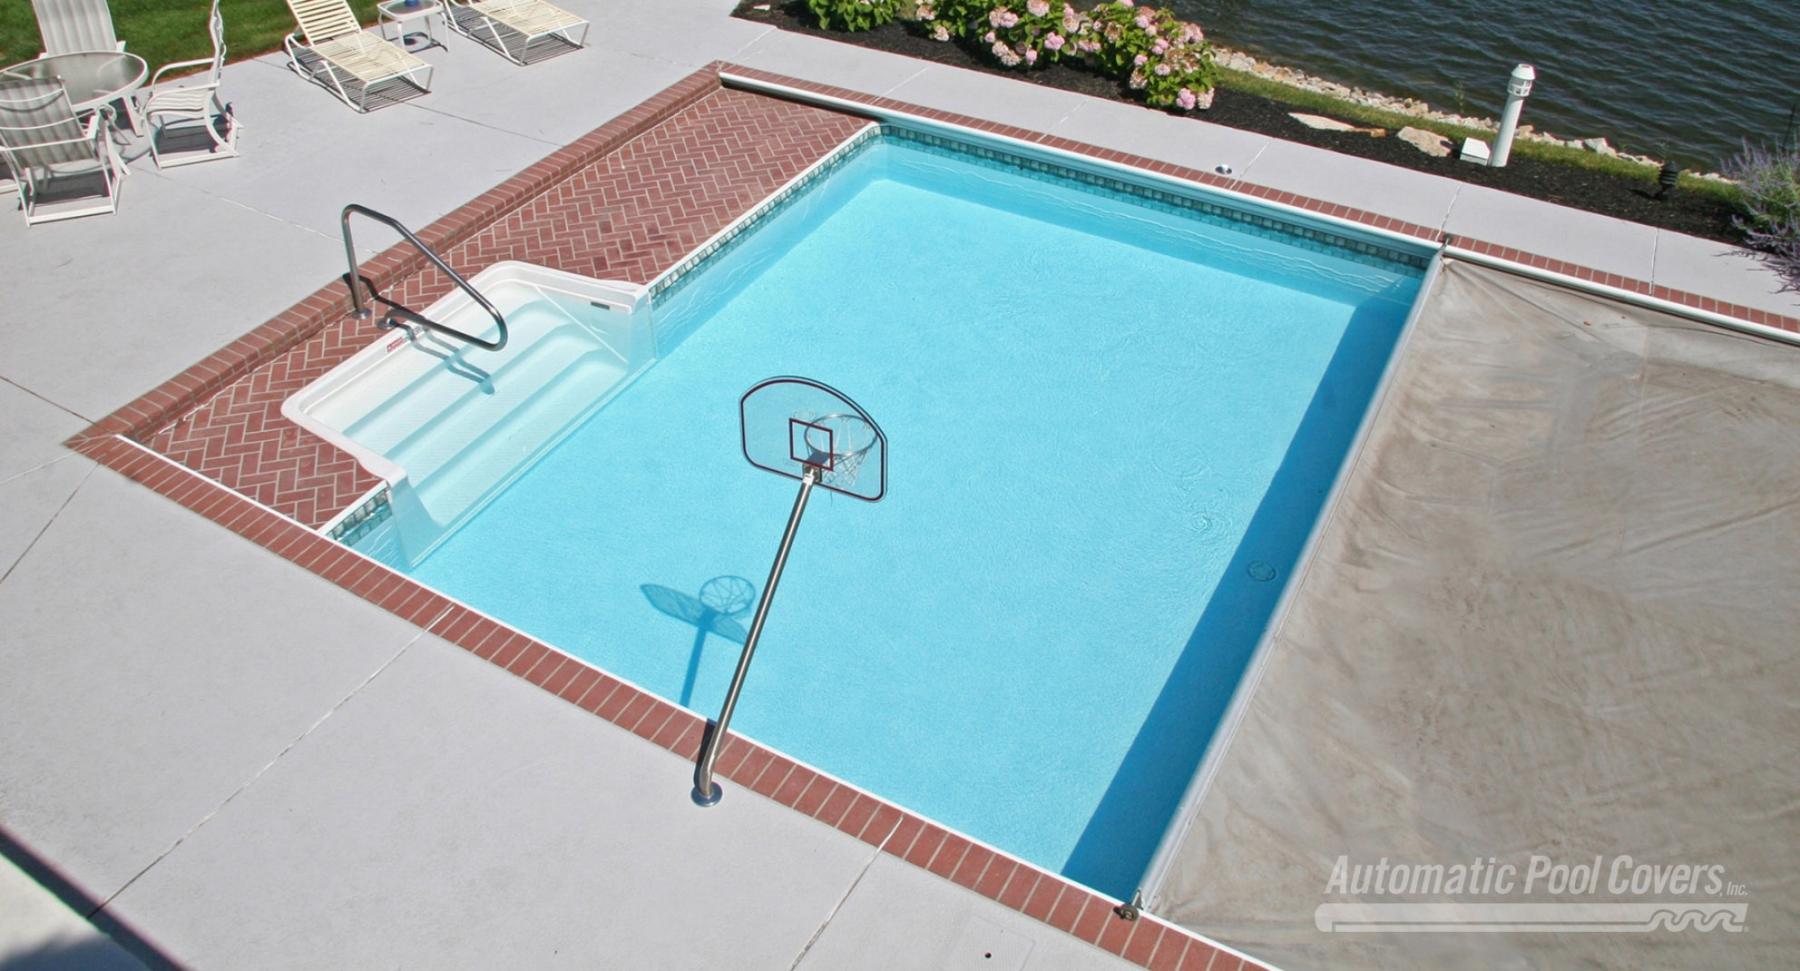 29 Covering A Swimming Pool With Decking Decor23